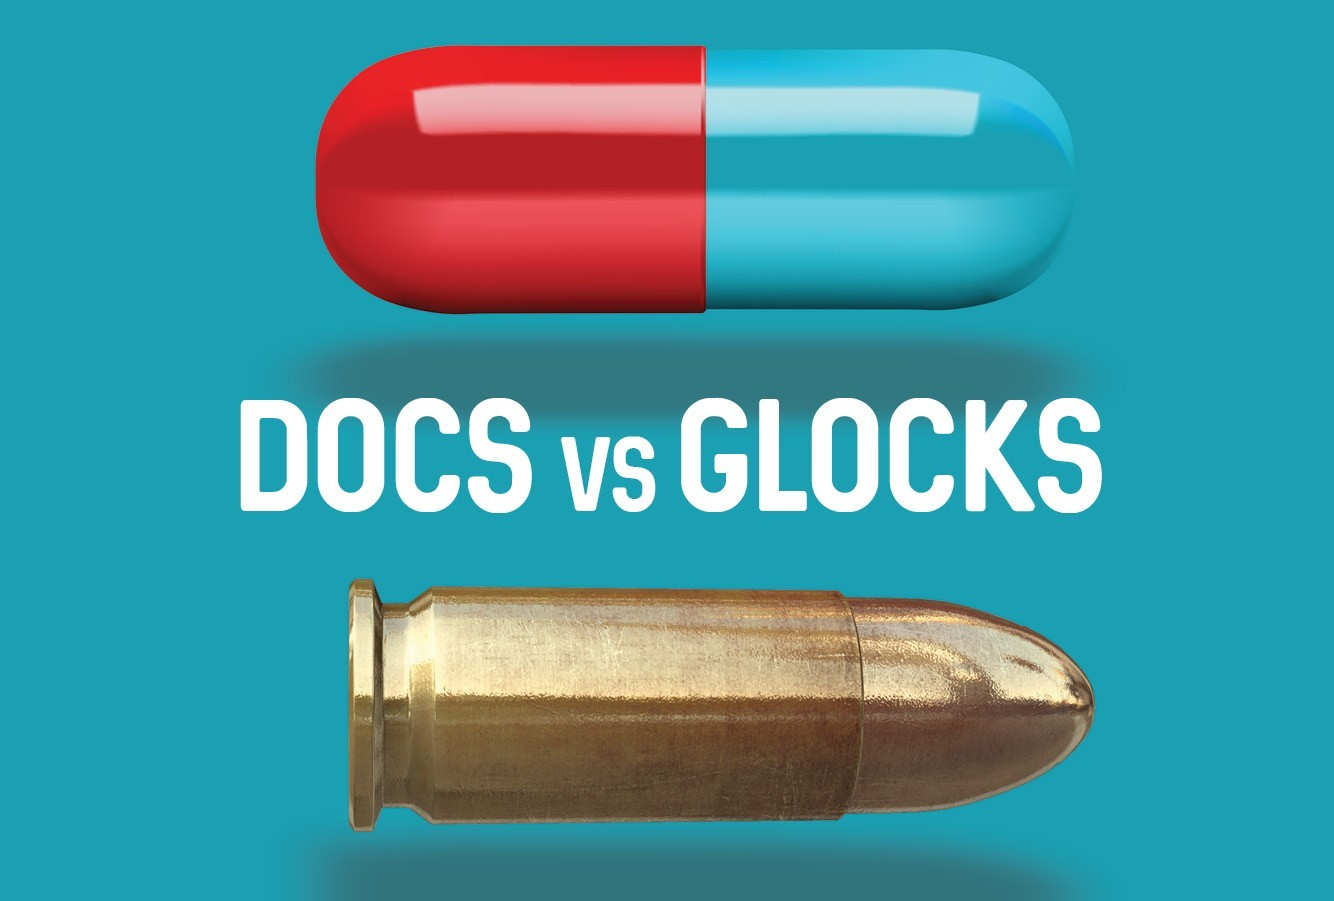 Federal Court Rules Florida Docs Vs Glocks Law Violates Doctors - Law docs